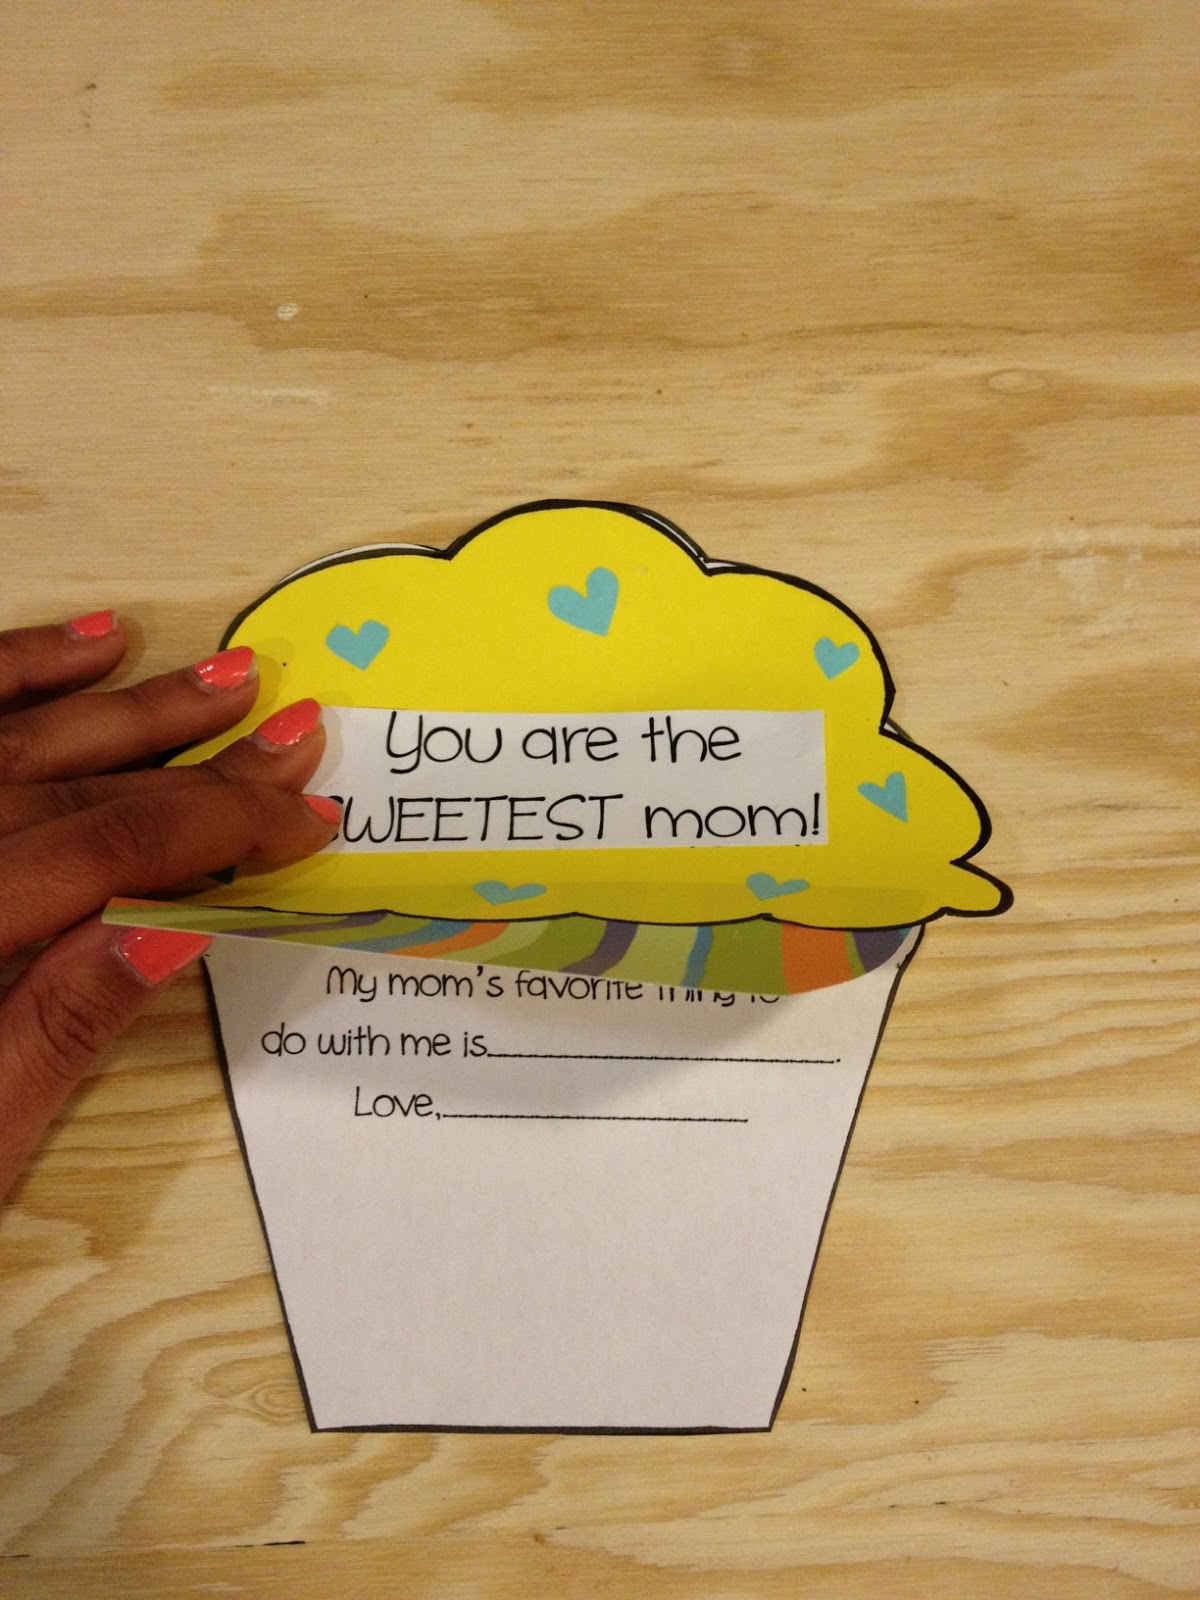 Cupcake mother 39 s day craft apples and abc 39 s for Fun crafts to do with your mom